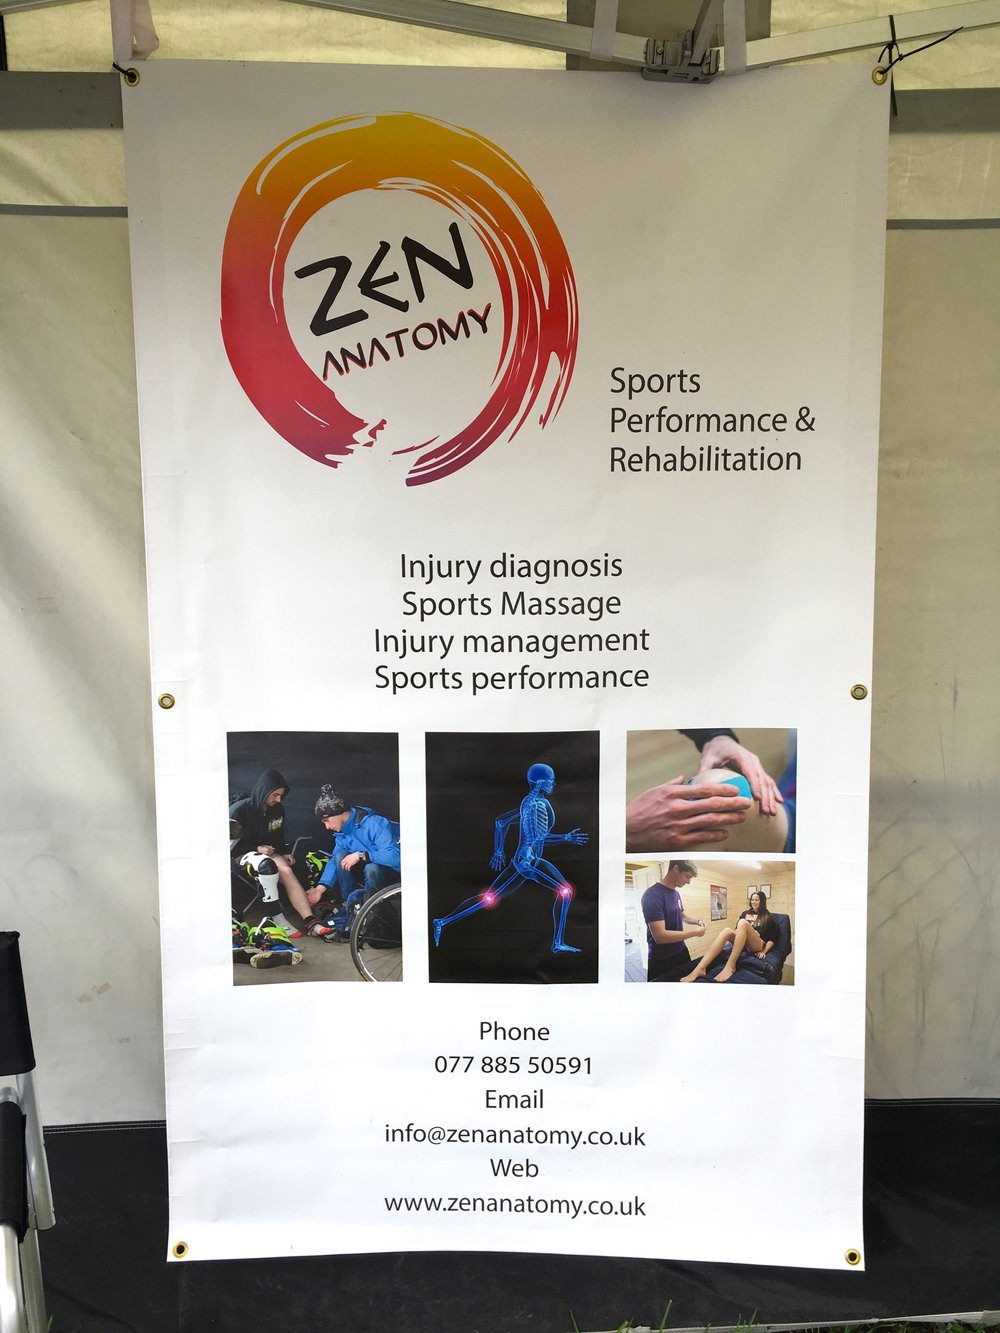 Luke from Zen Anatomy came along to offer consultations and treatments